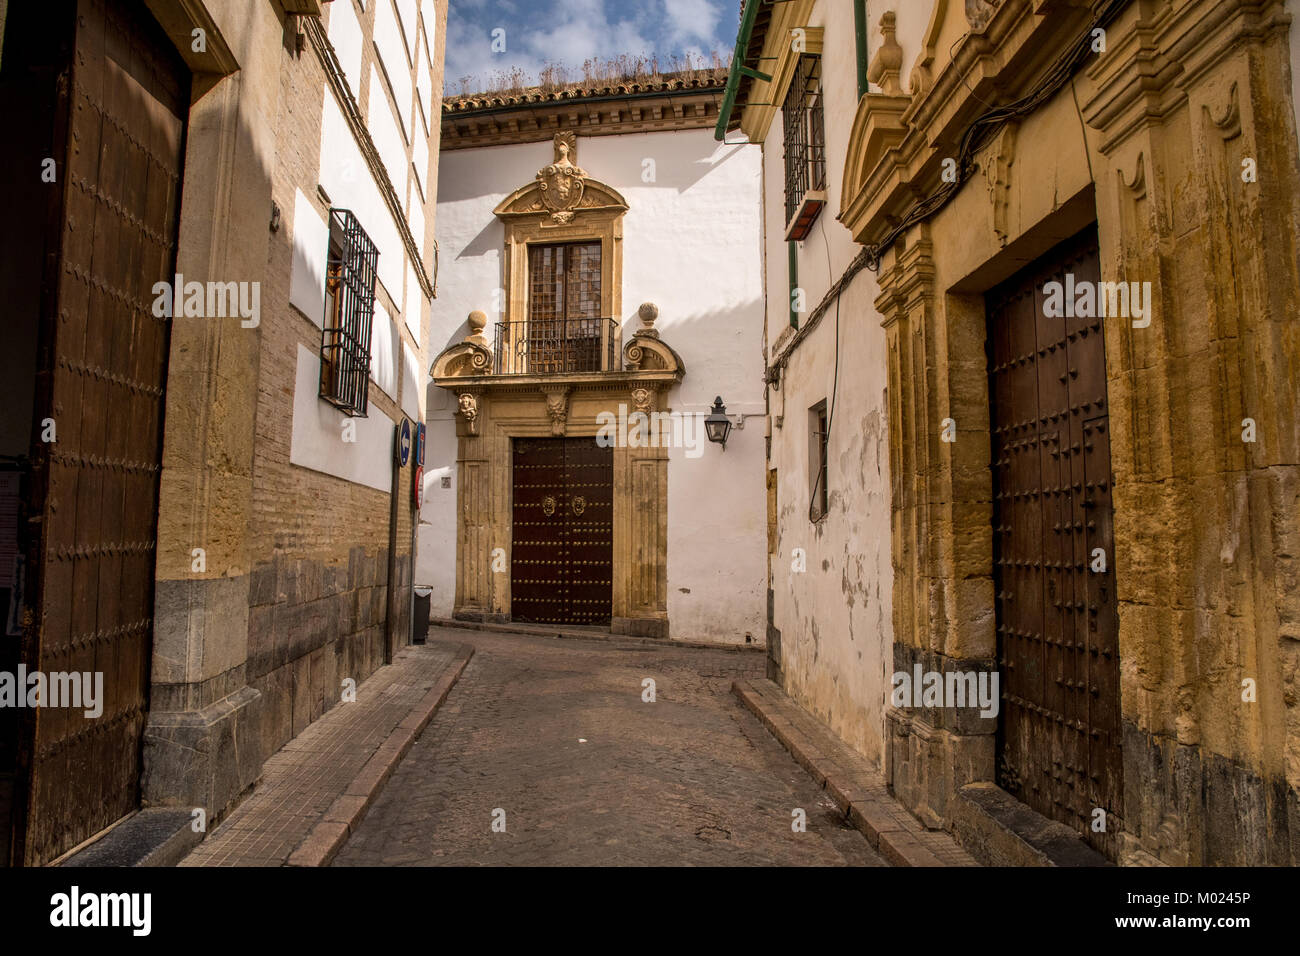 CORDOBA, ANDALUSIA / SPAIN - OCTOBER 14 2017: OLD CITY STREET Stock Photo